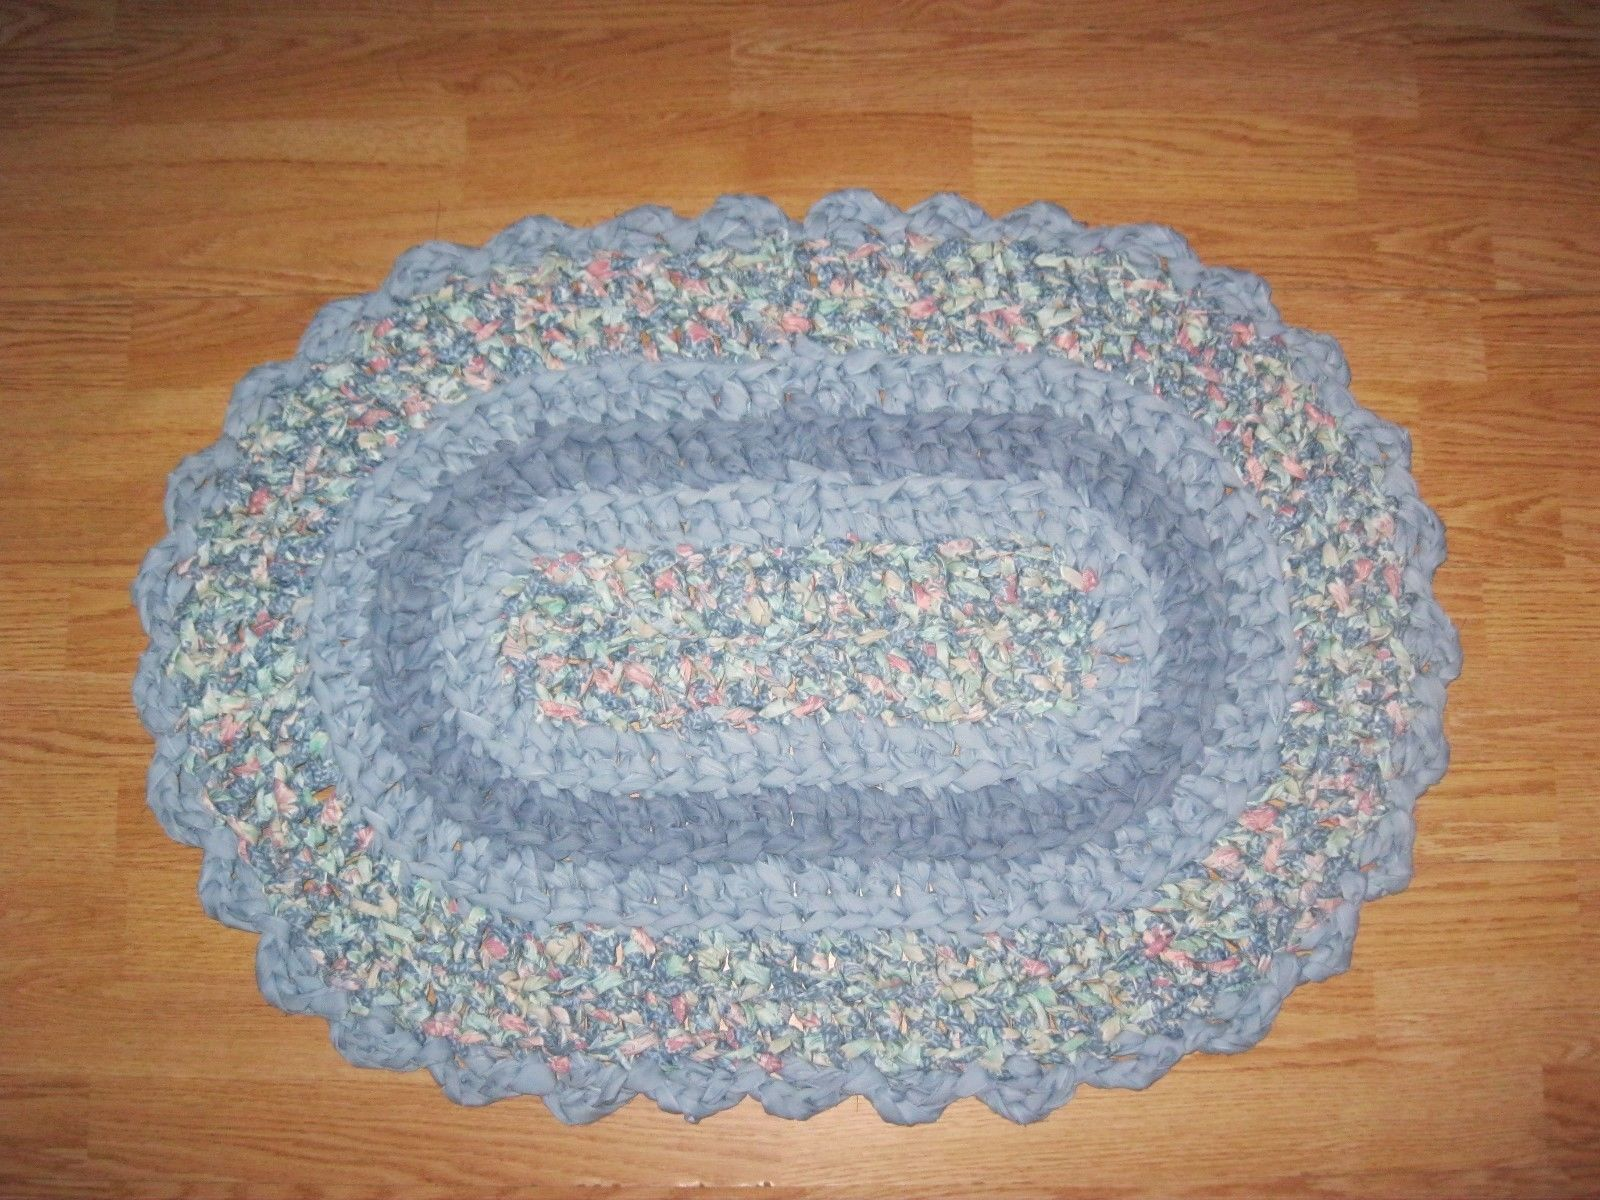 Woven Rag And Braided Rugs 160665 Fabric Rag Rug Oval Floral Print Blue Solids Hand Crochet Wachine Wash 2 Hand Crochet Braided Rugs Crochet Fabric